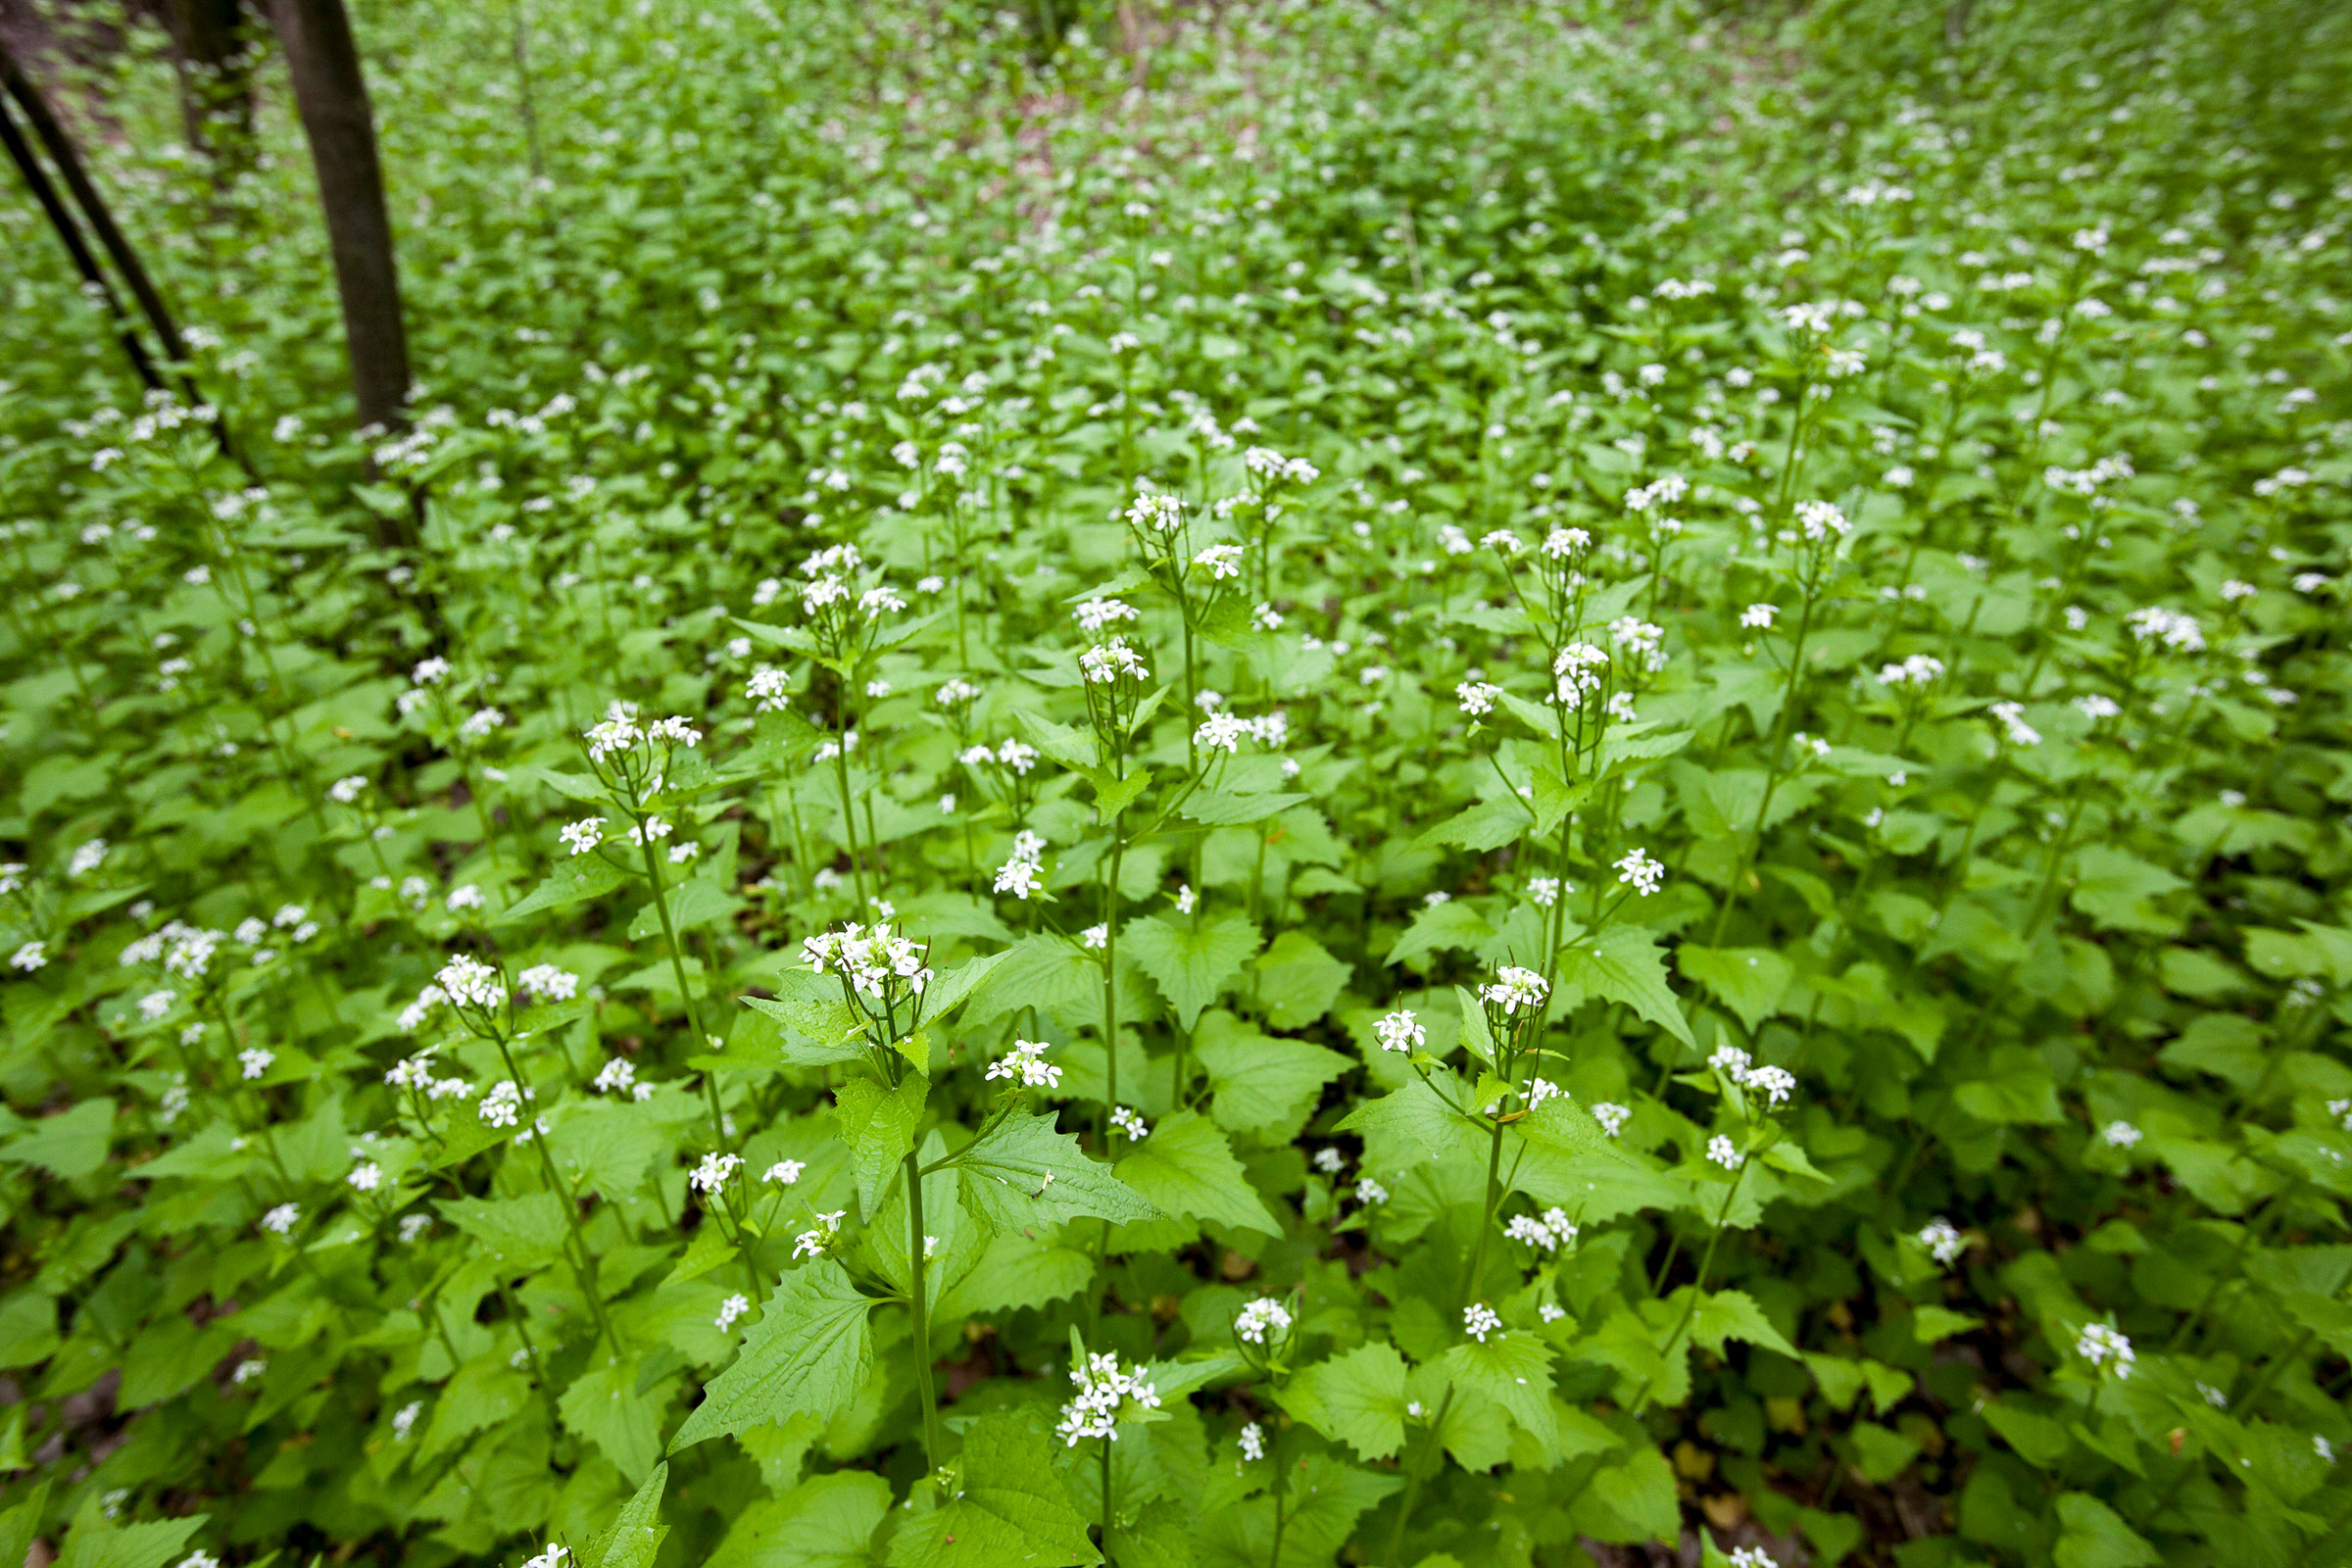 Garlic mustard, an invasive species native to Europe and Asia. In North America it can crowd out native plants in woodland habitats. Jim West/Alamy